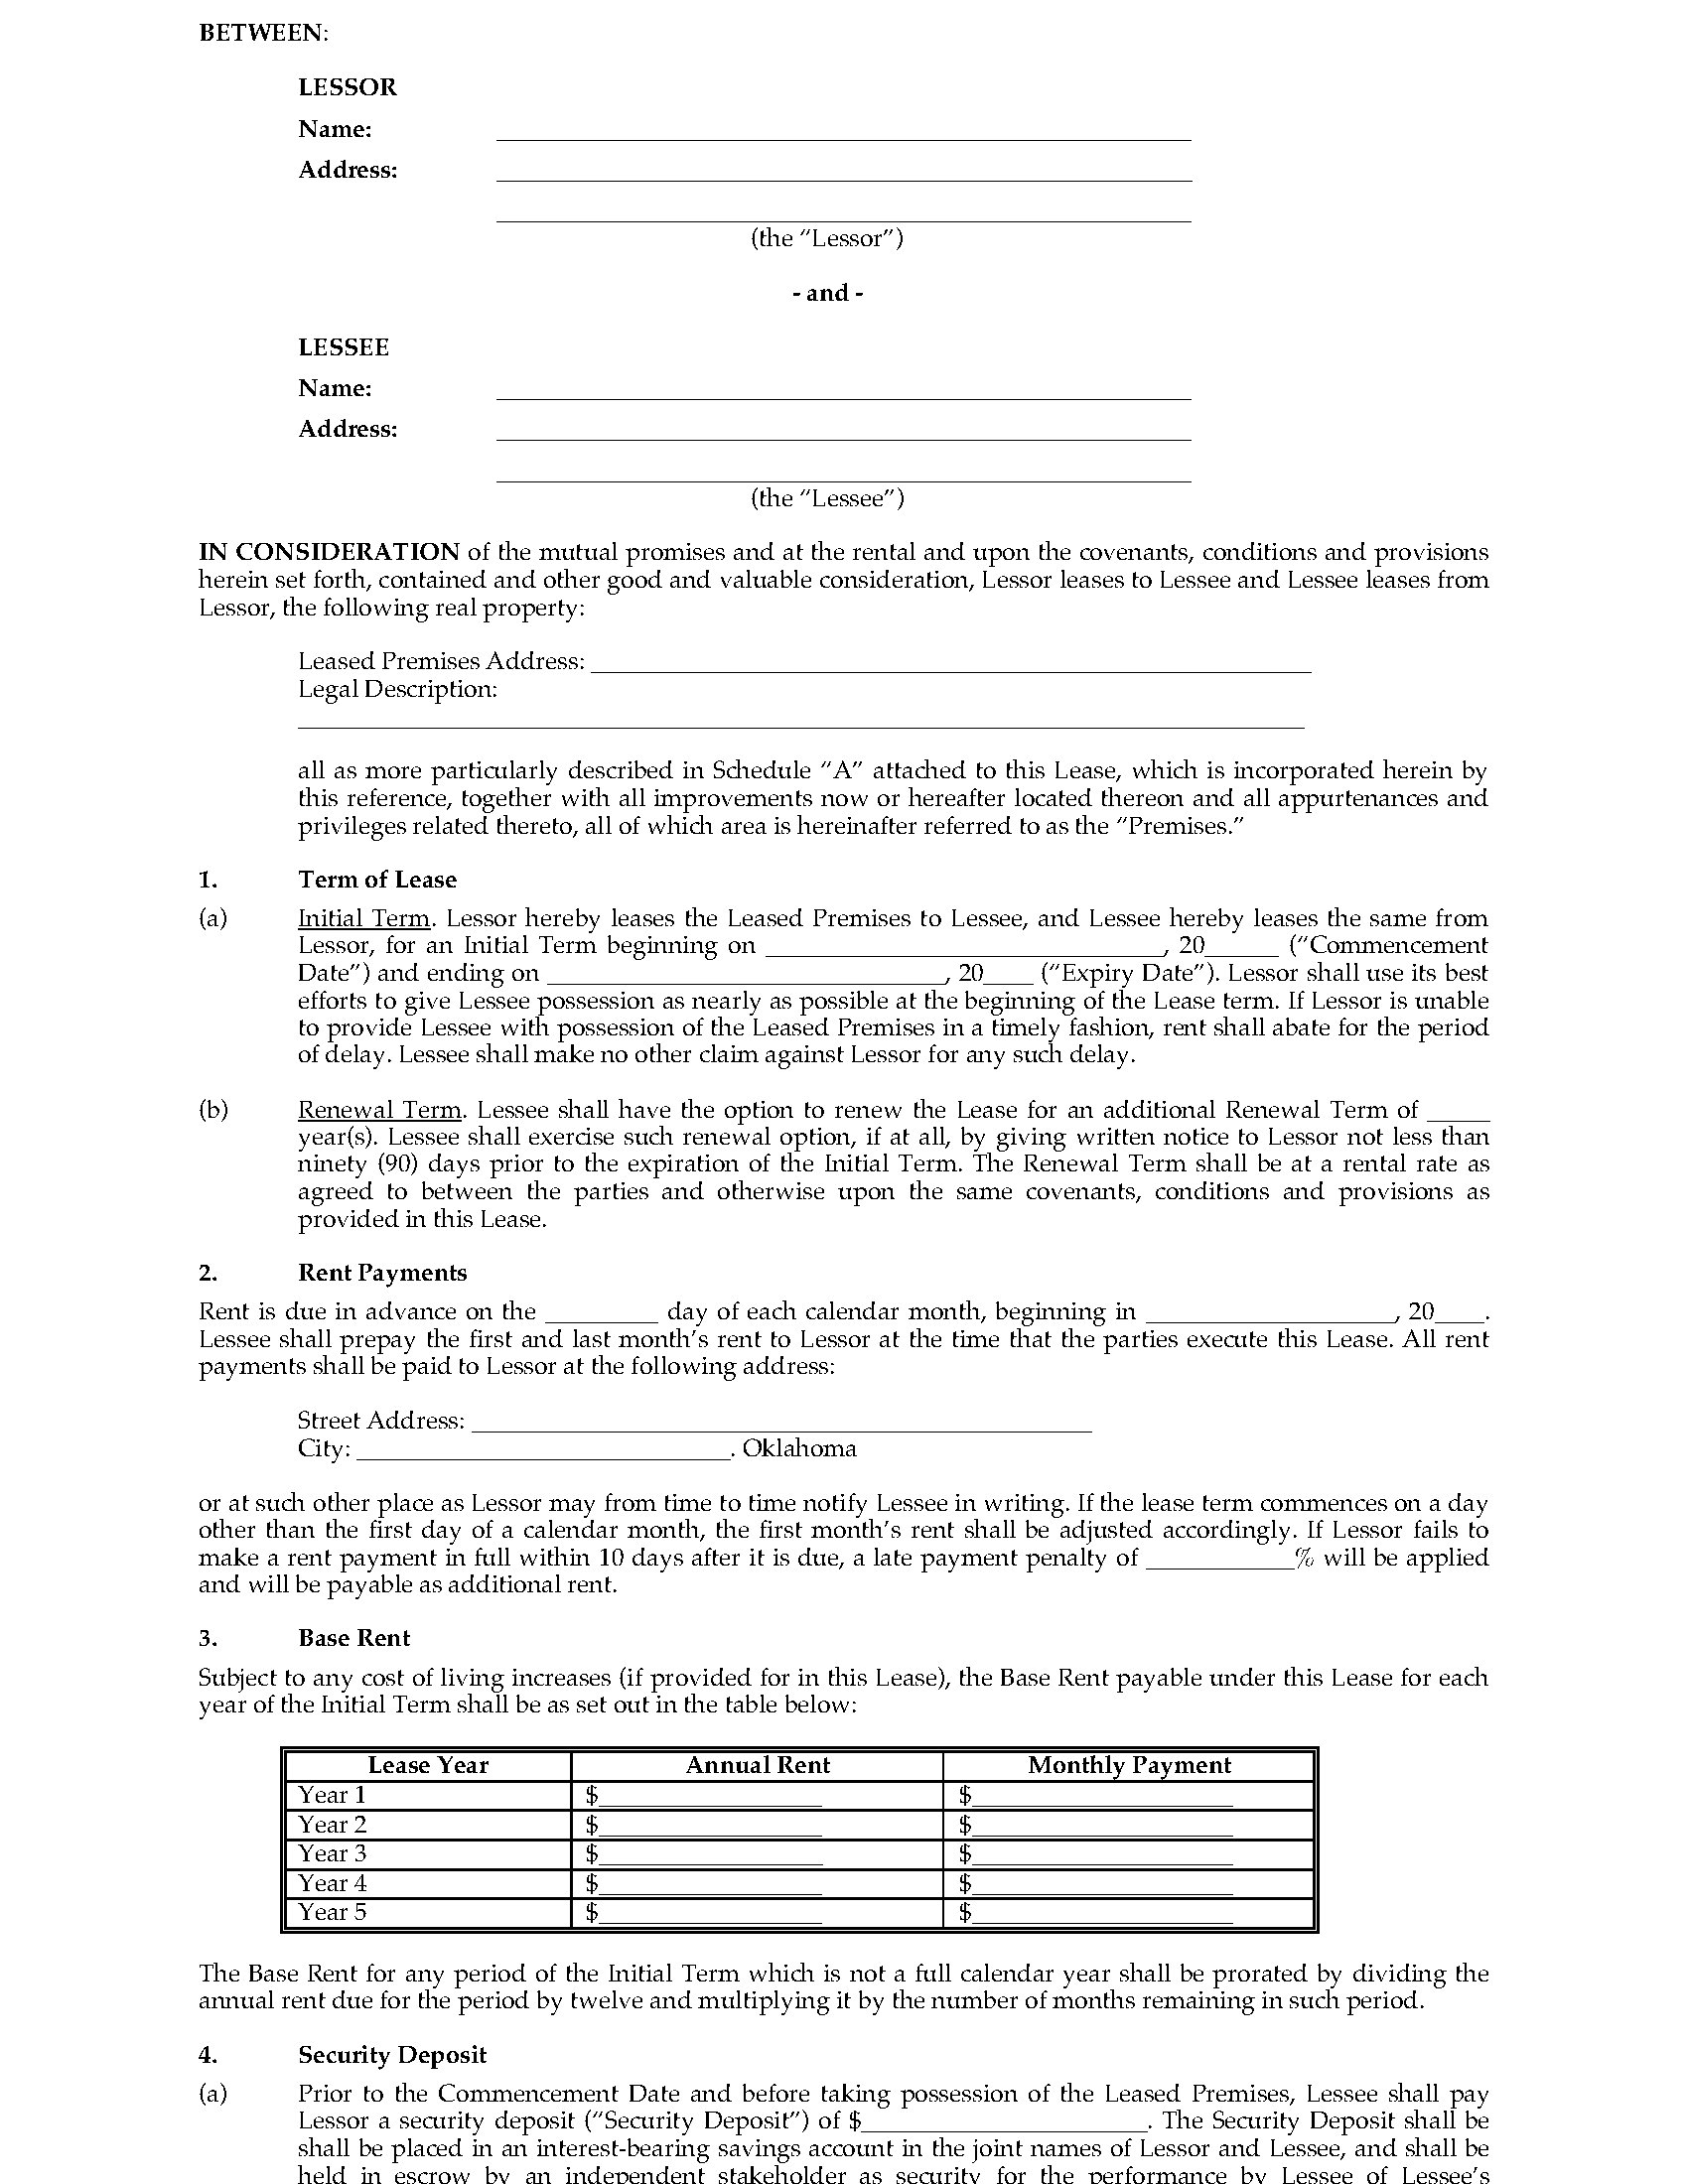 Oklahoma Lease Agreement Oklahoma Commercial Triple Net Lease Agreement